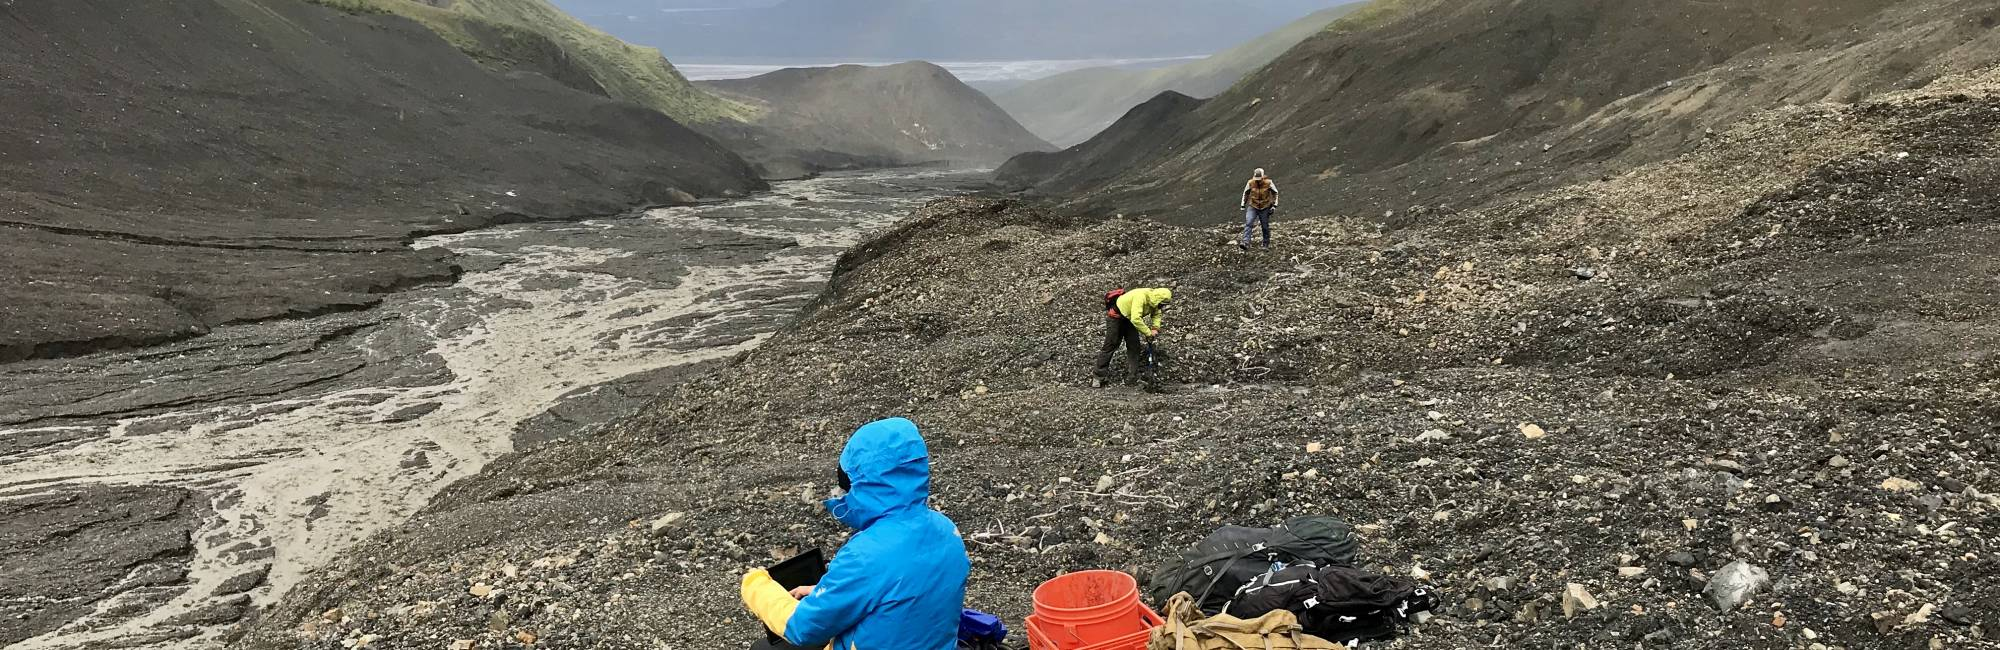 Researchers take measurements in a rocky glacier setting